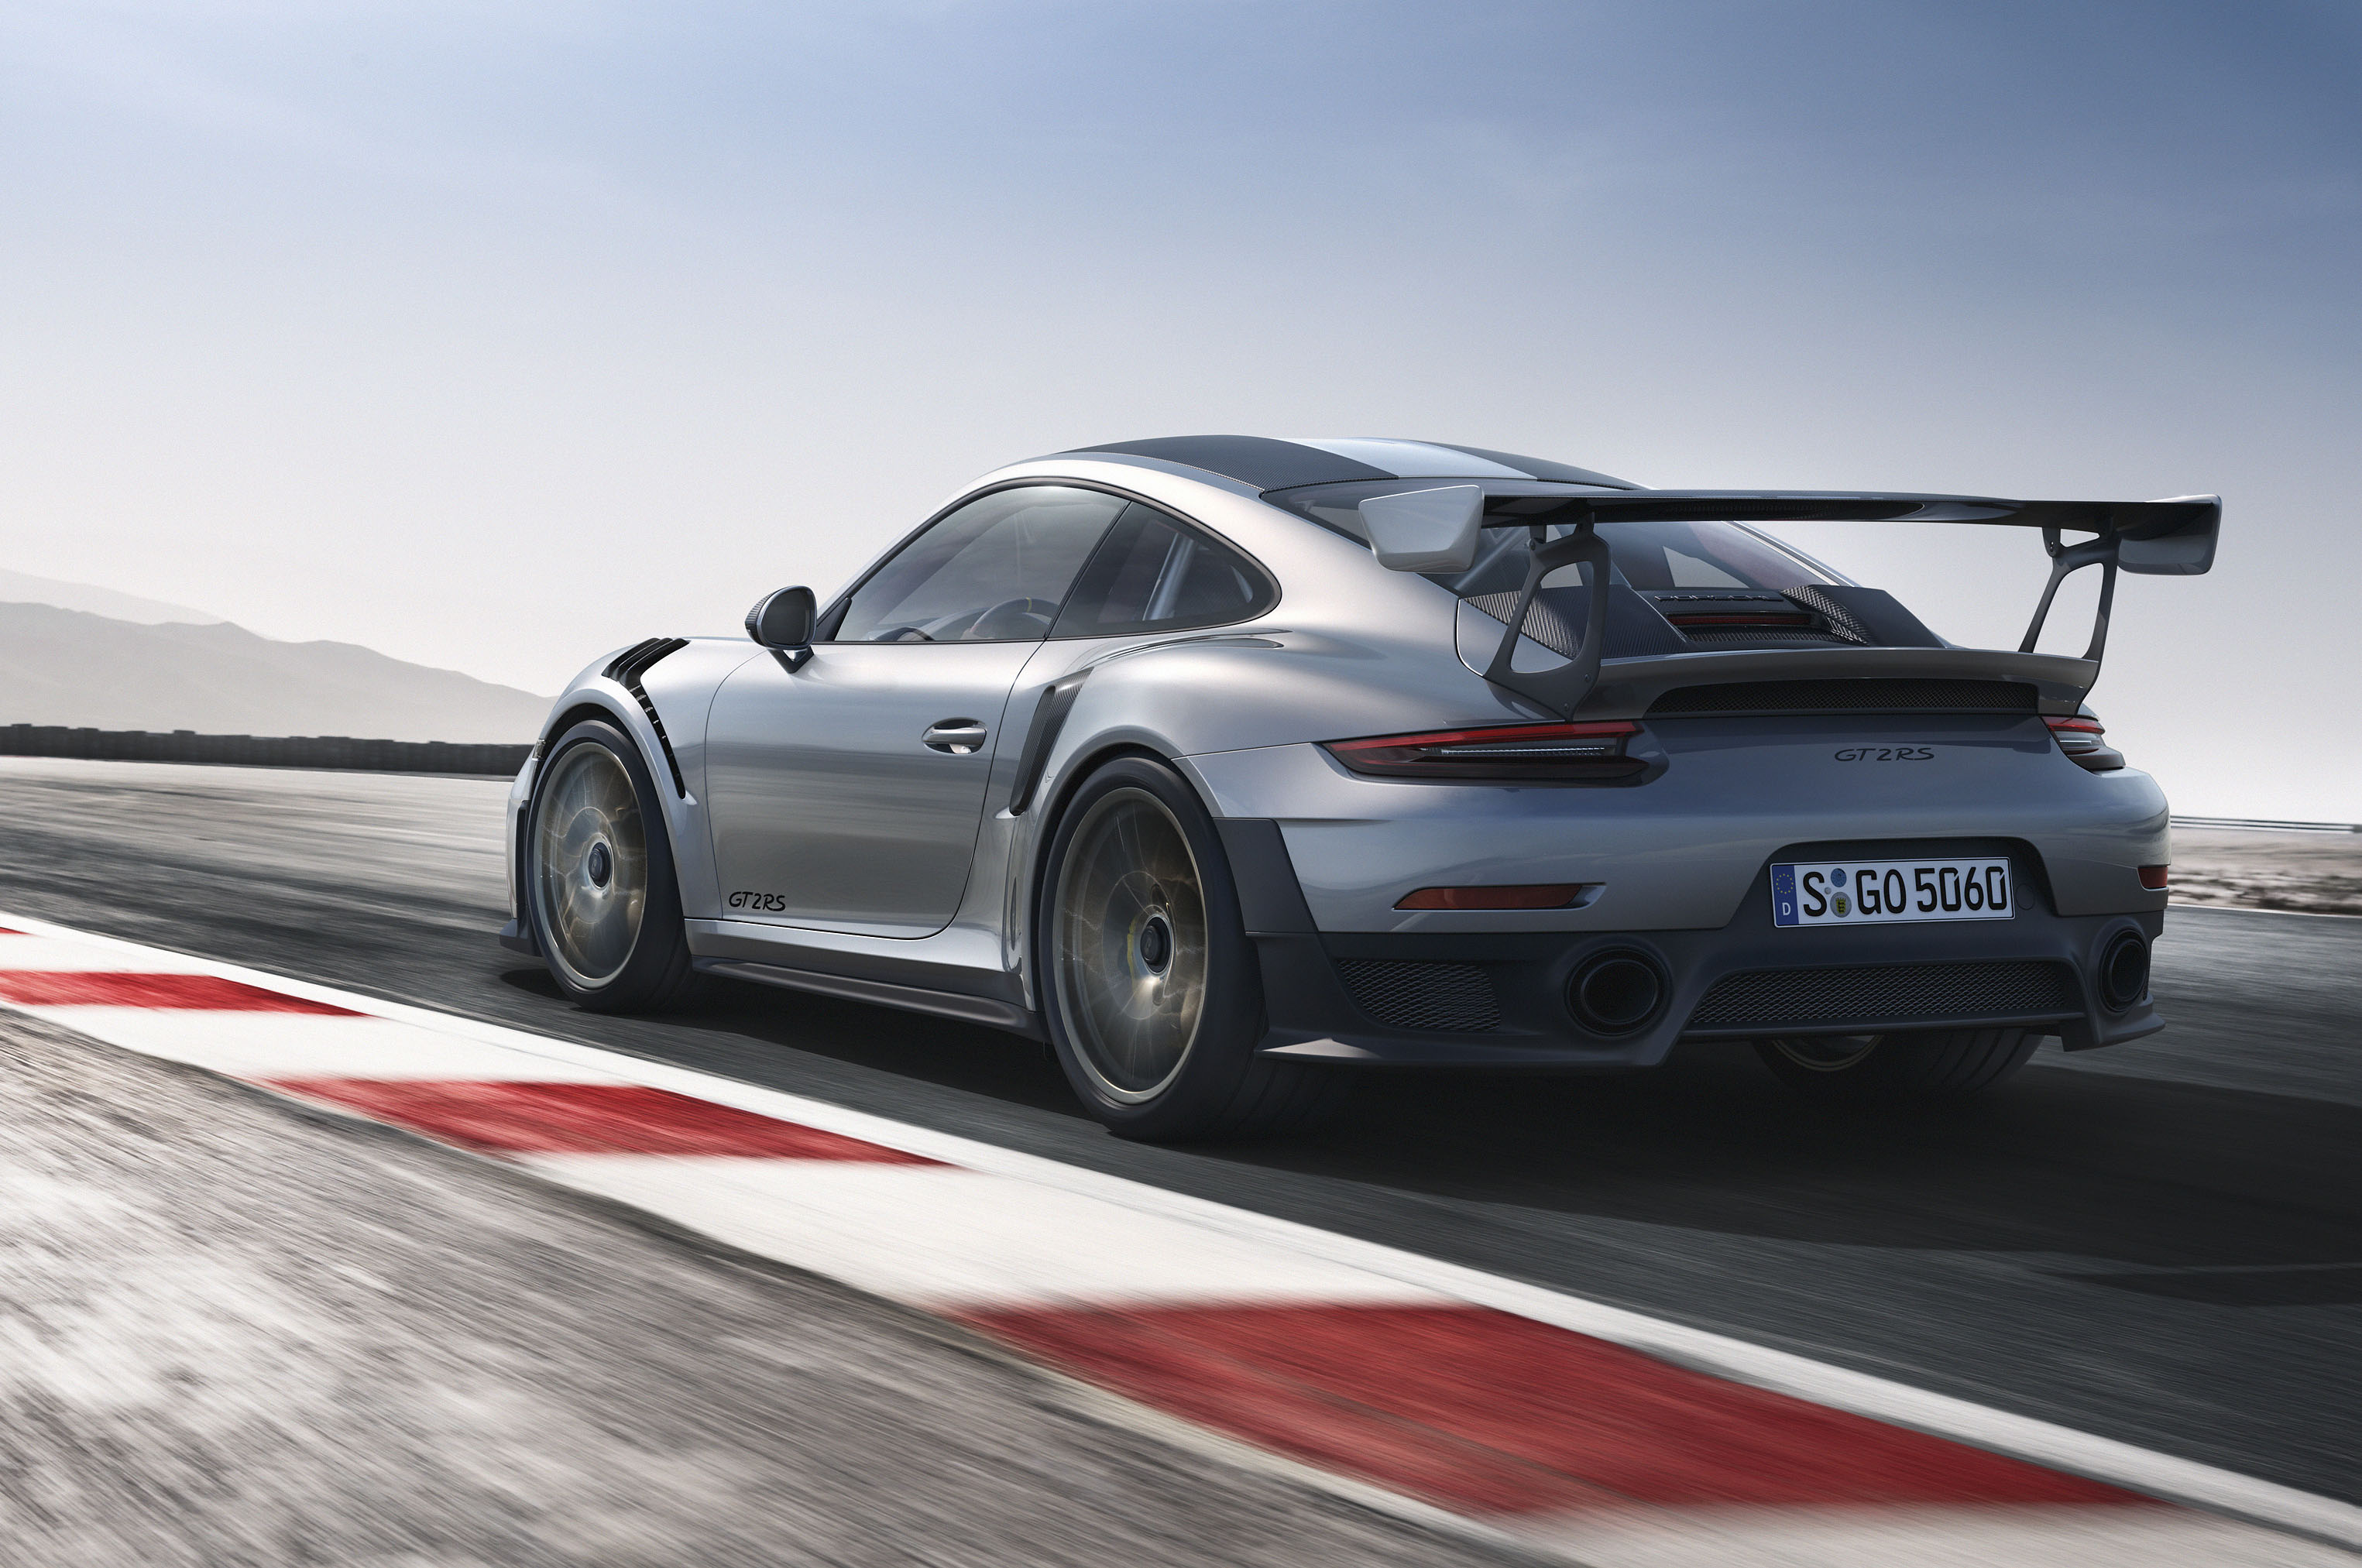 2018-Porsche-911-GT2-RS-rear-view Interesting Porsche 911 Gt2 and Gt3 Cars Trend